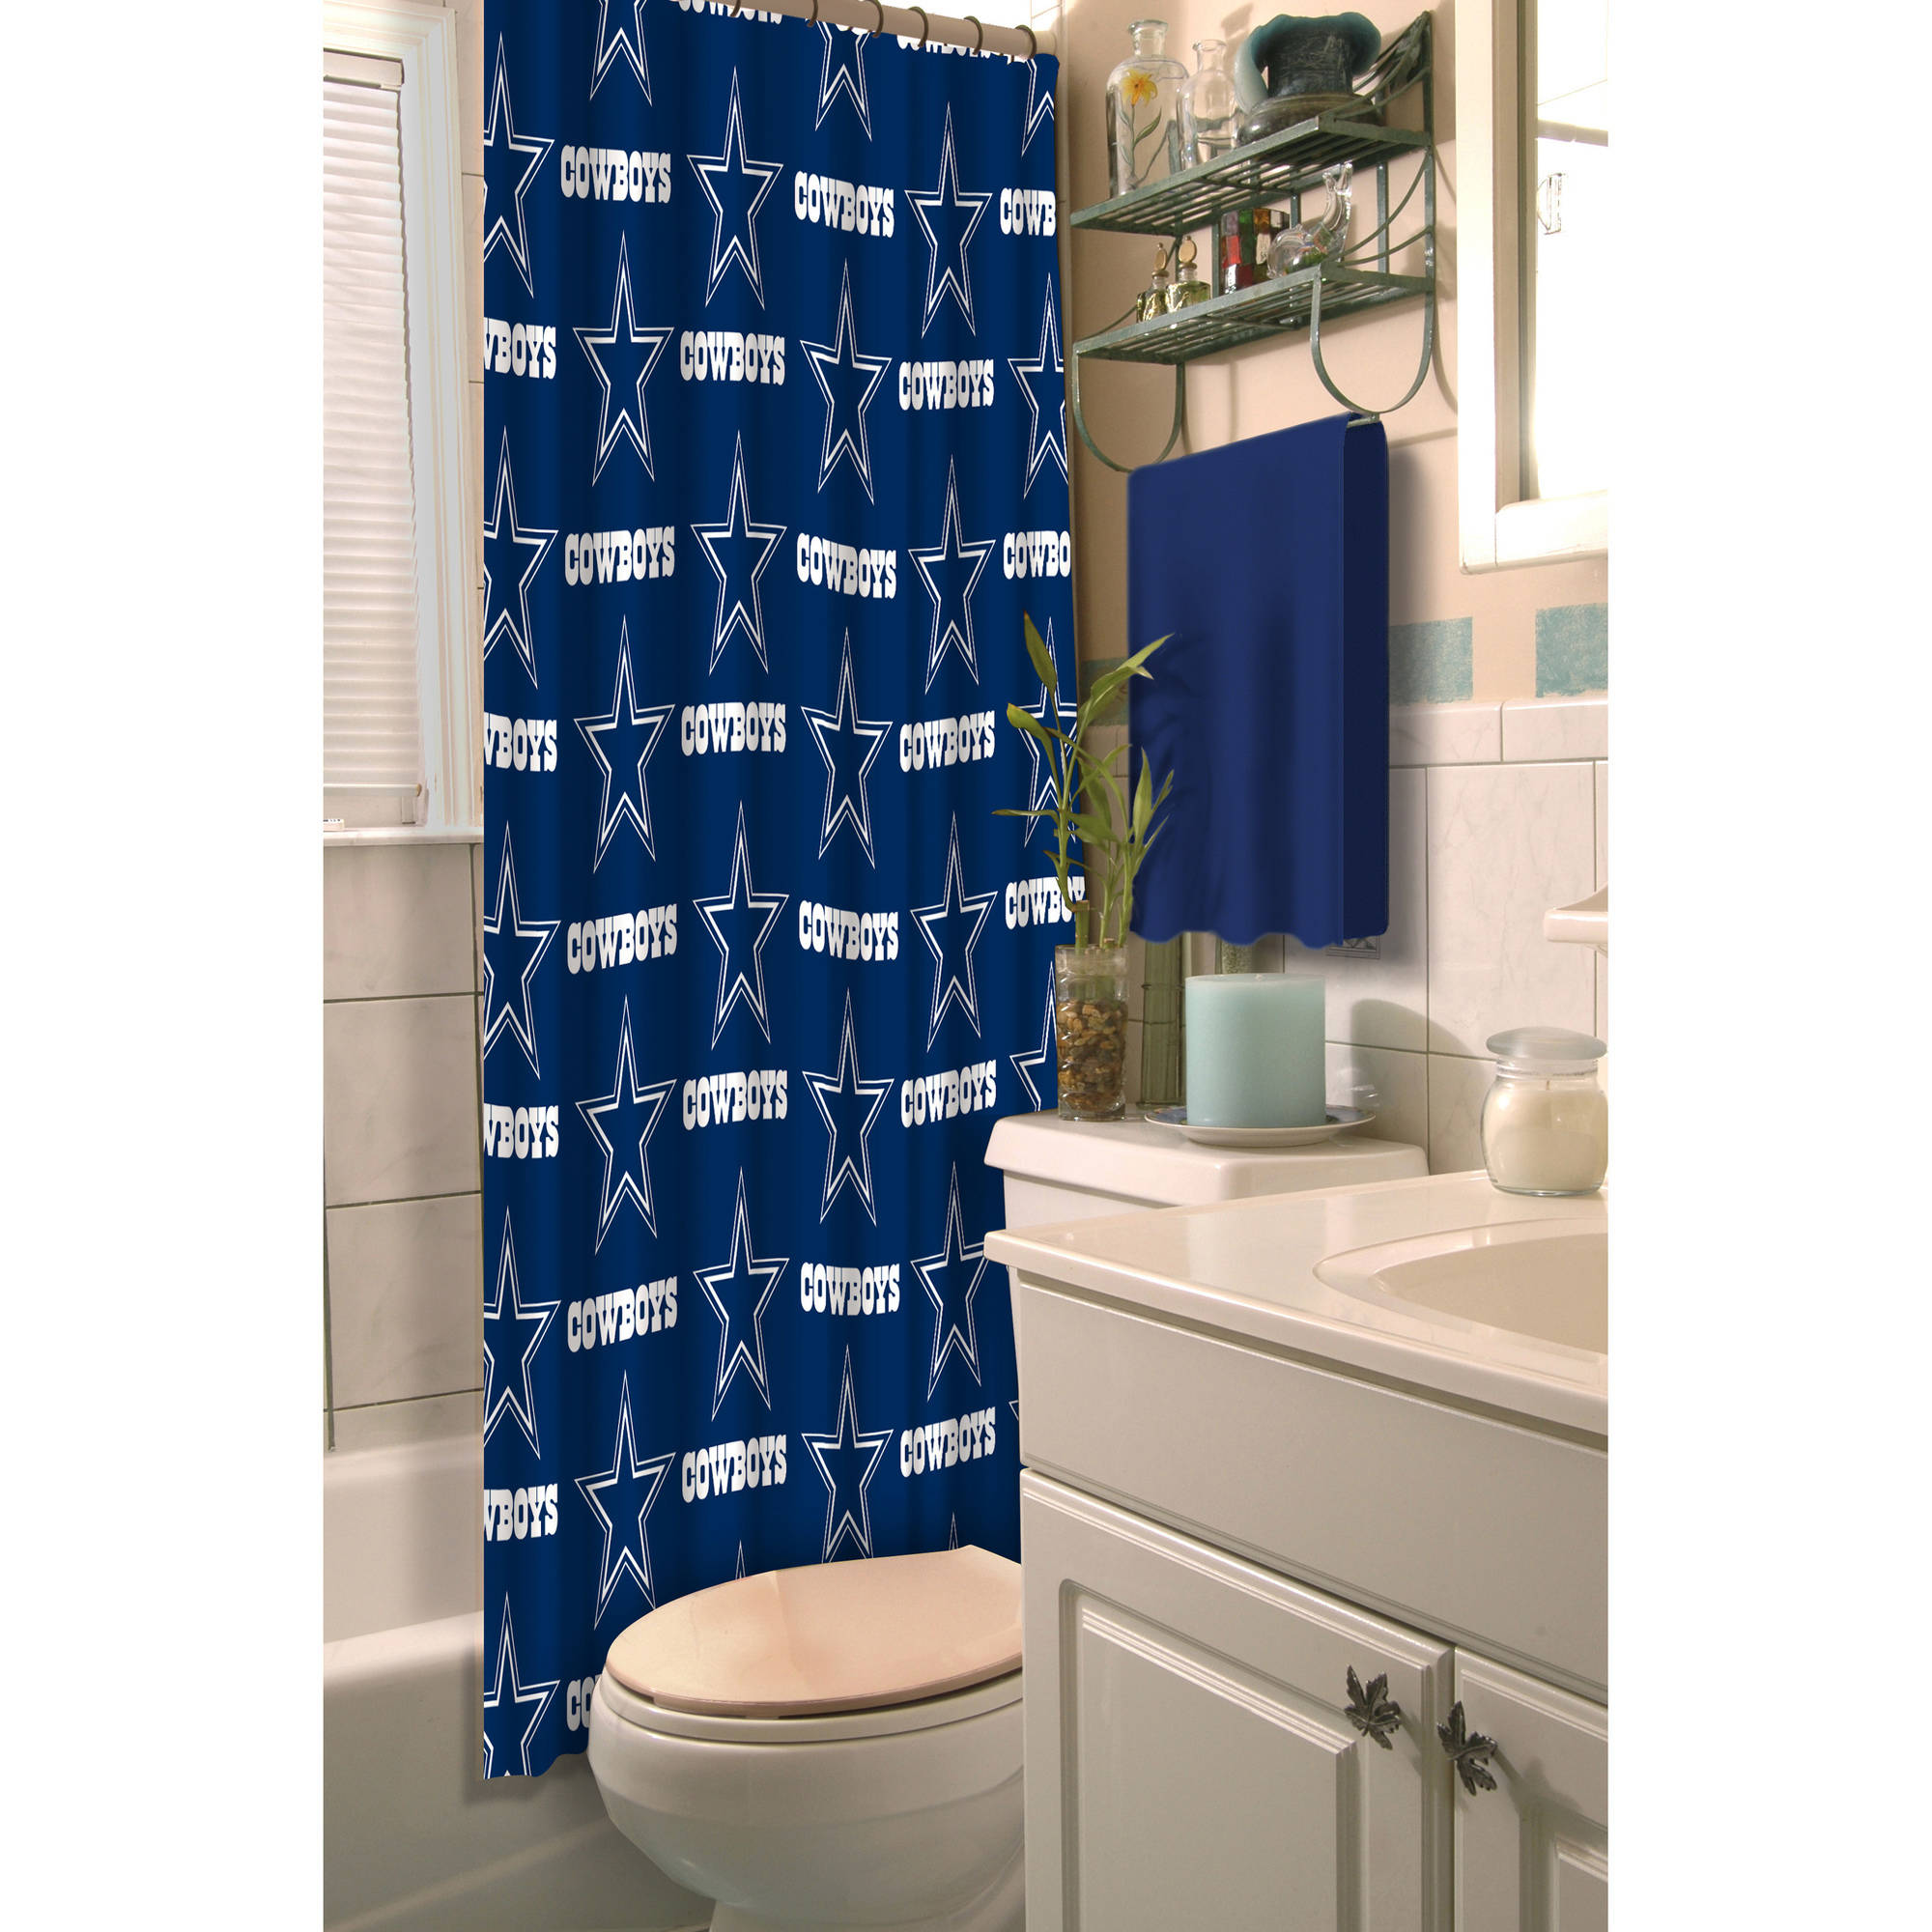 Bathroom decoration shower curtain - Nfl Dallas Cowboys Decorative Bath Collection Shower Curtain Walmart Com